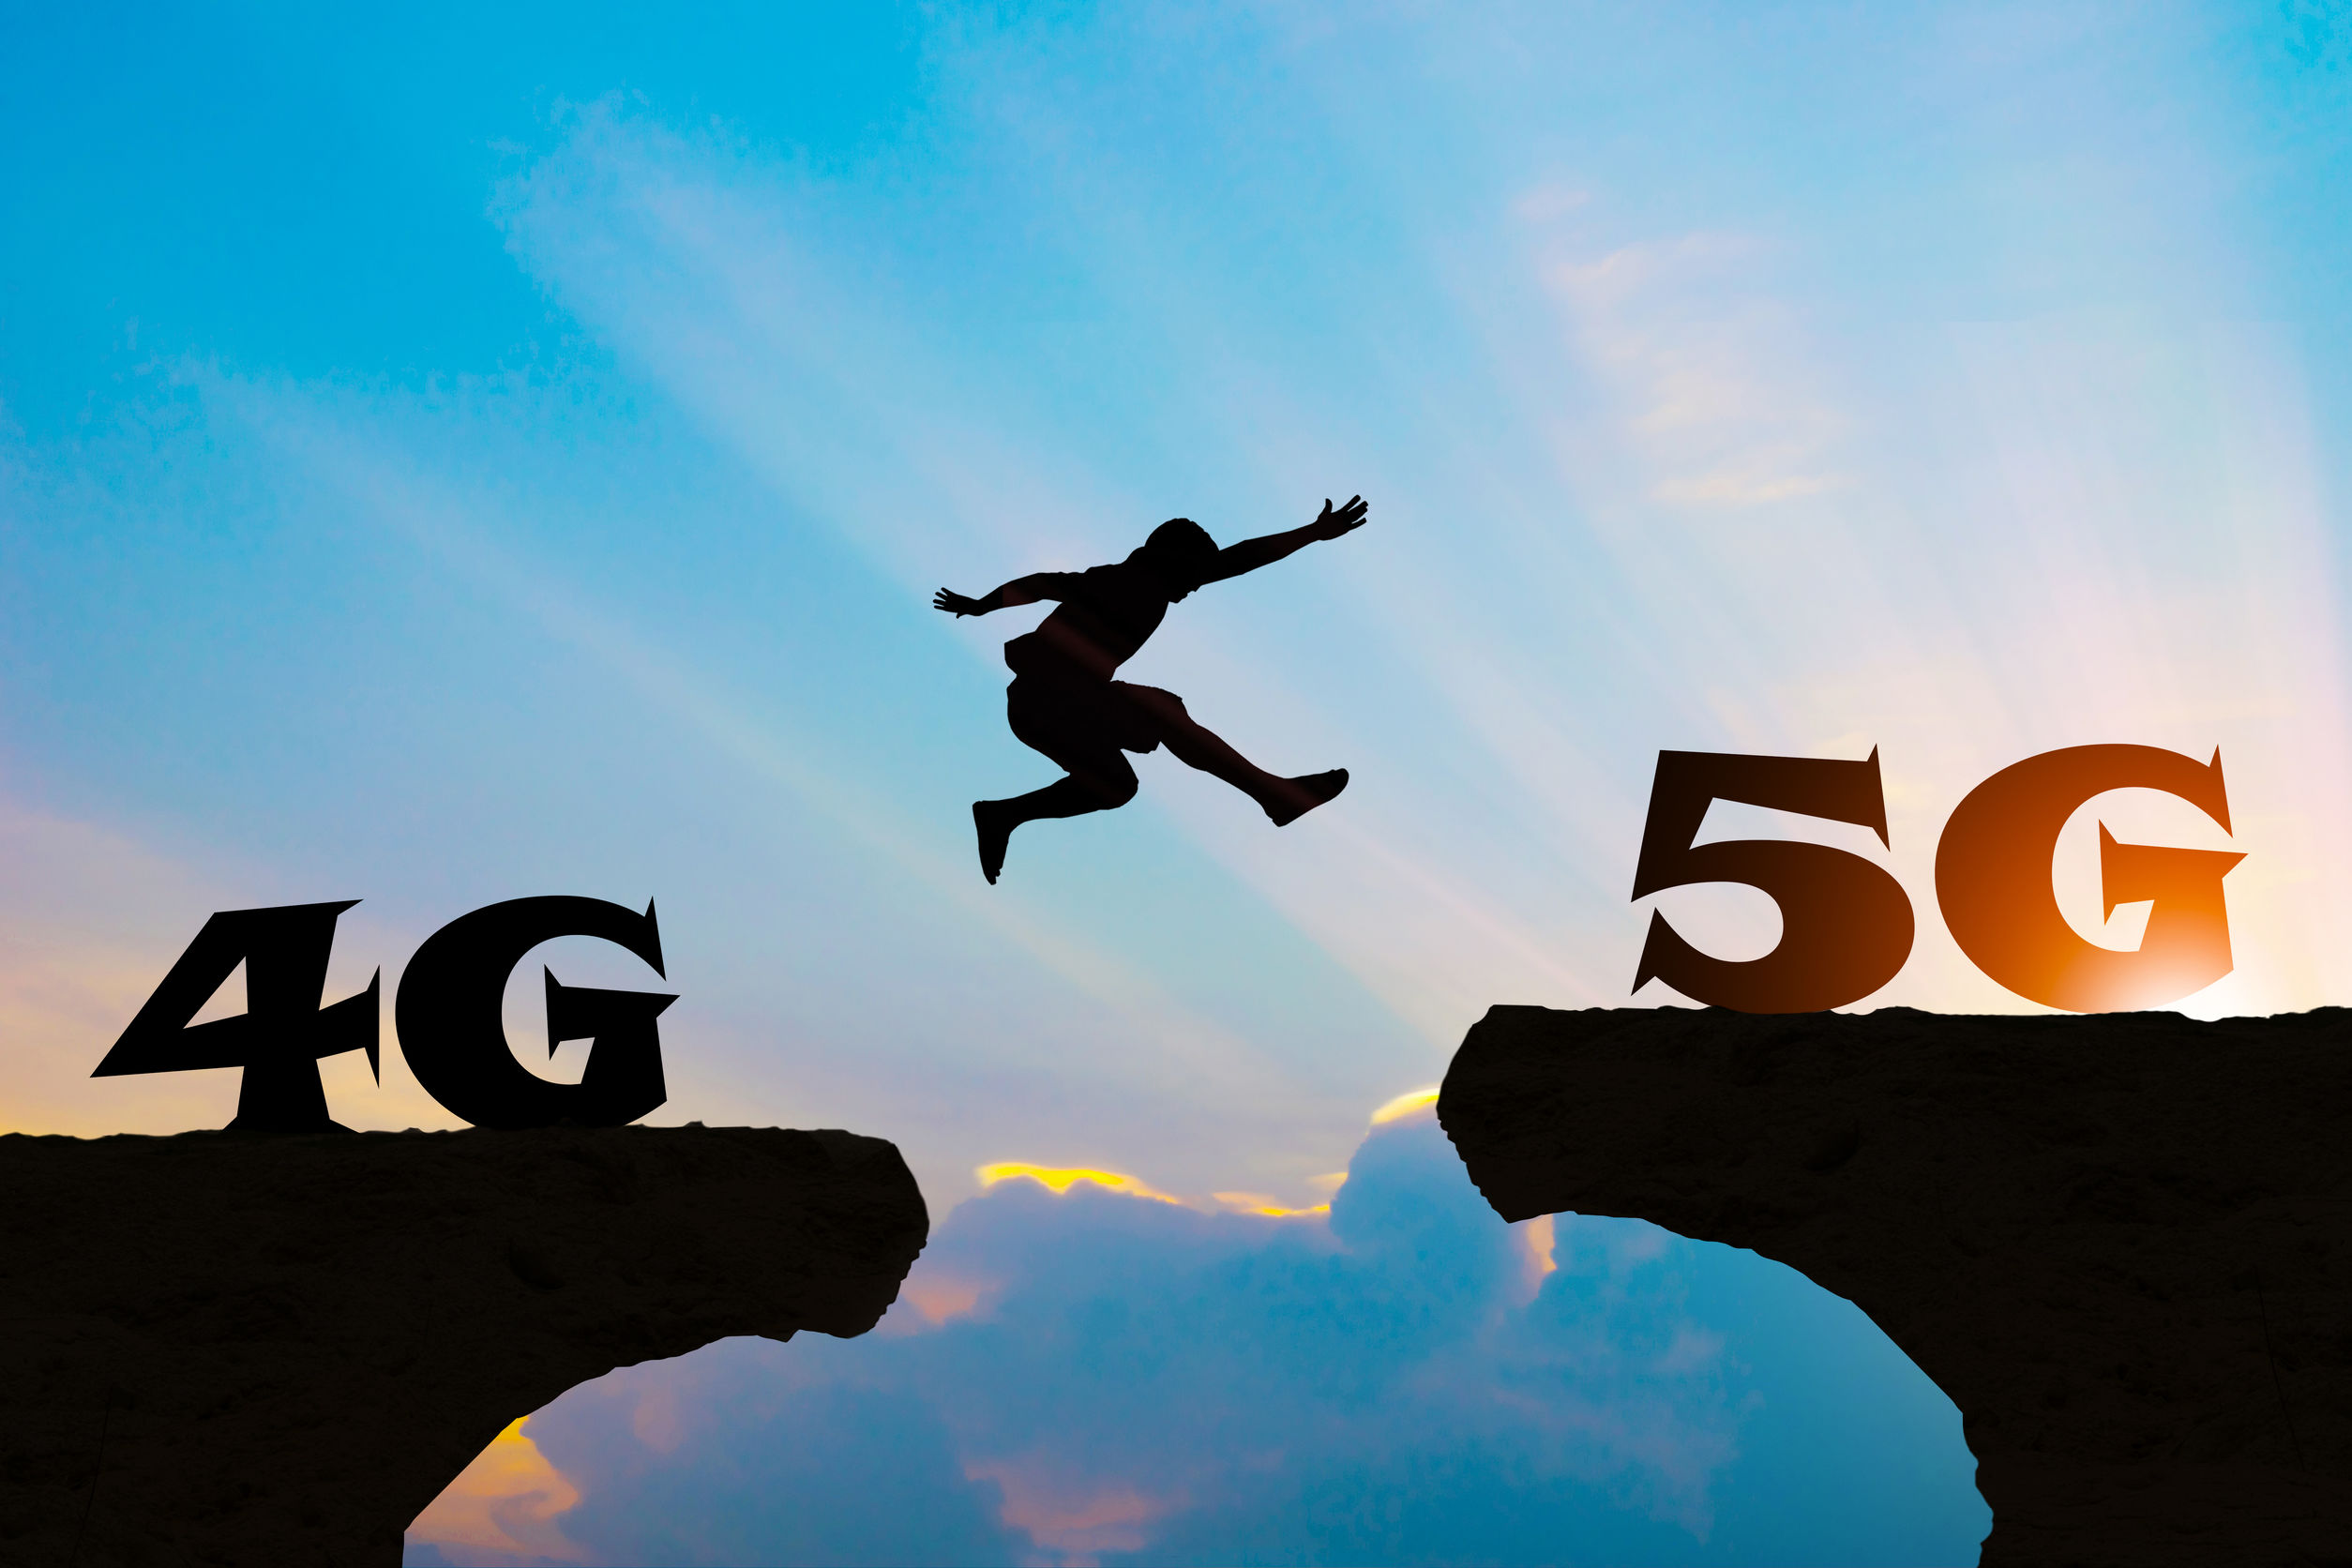 4G cambia a 5G